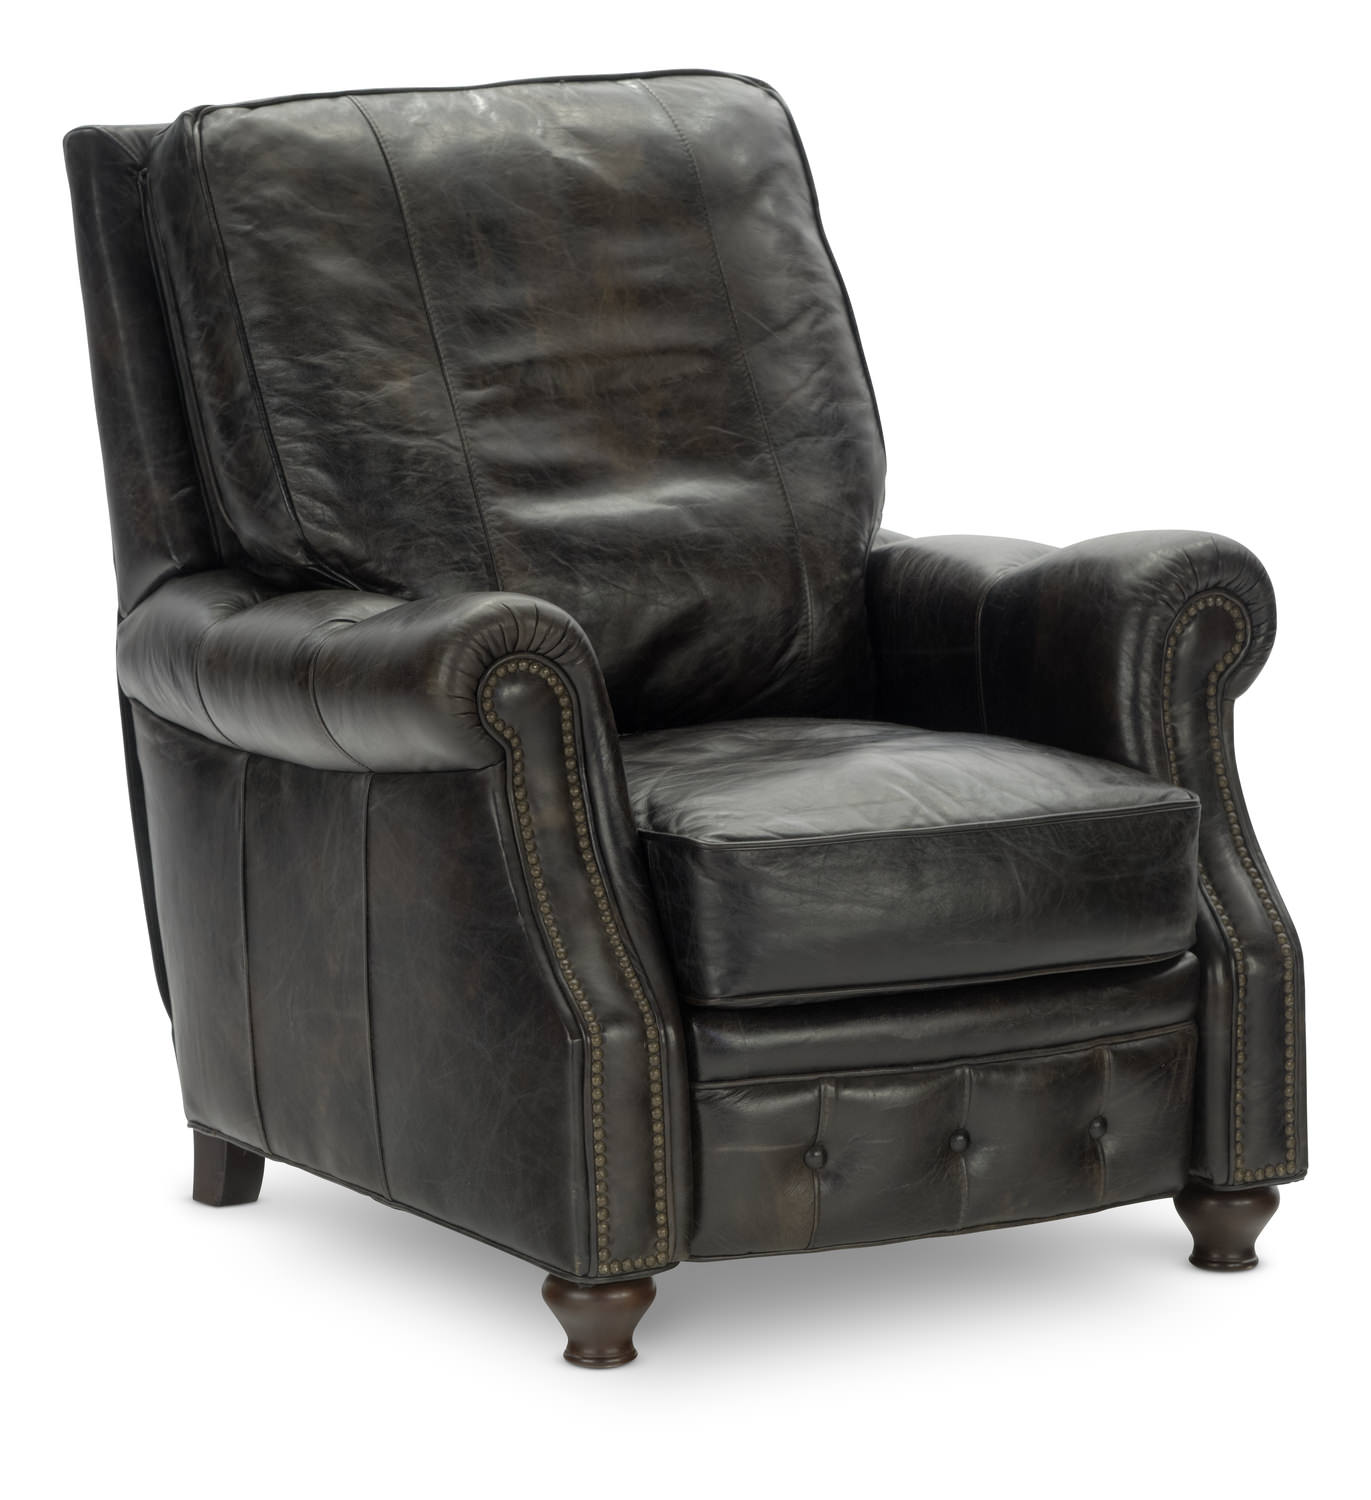 Madison Leather Recliner By Bradington Young ...